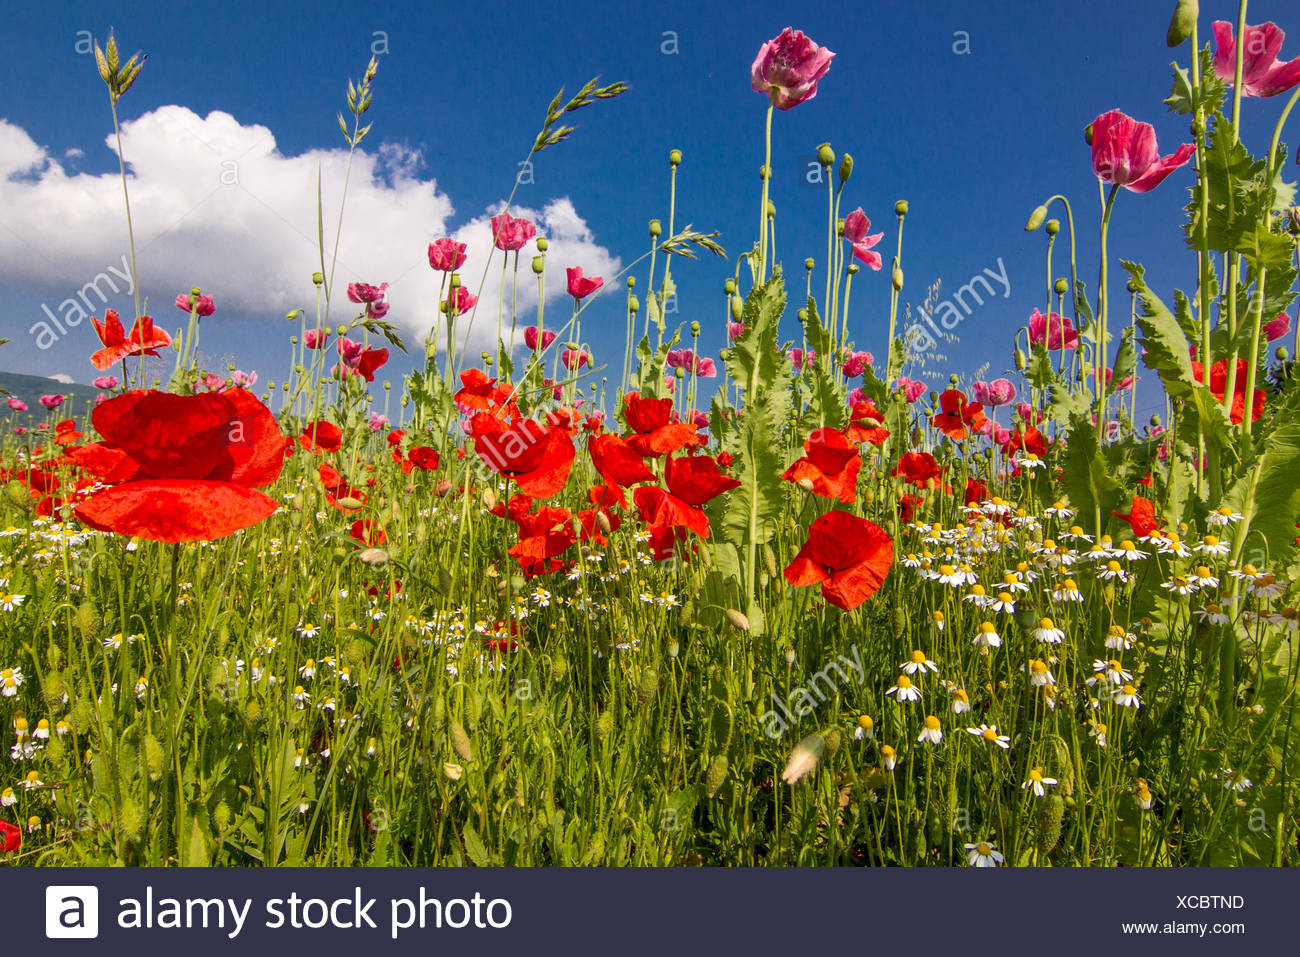 corn rose and Opium poppy Stock Photo